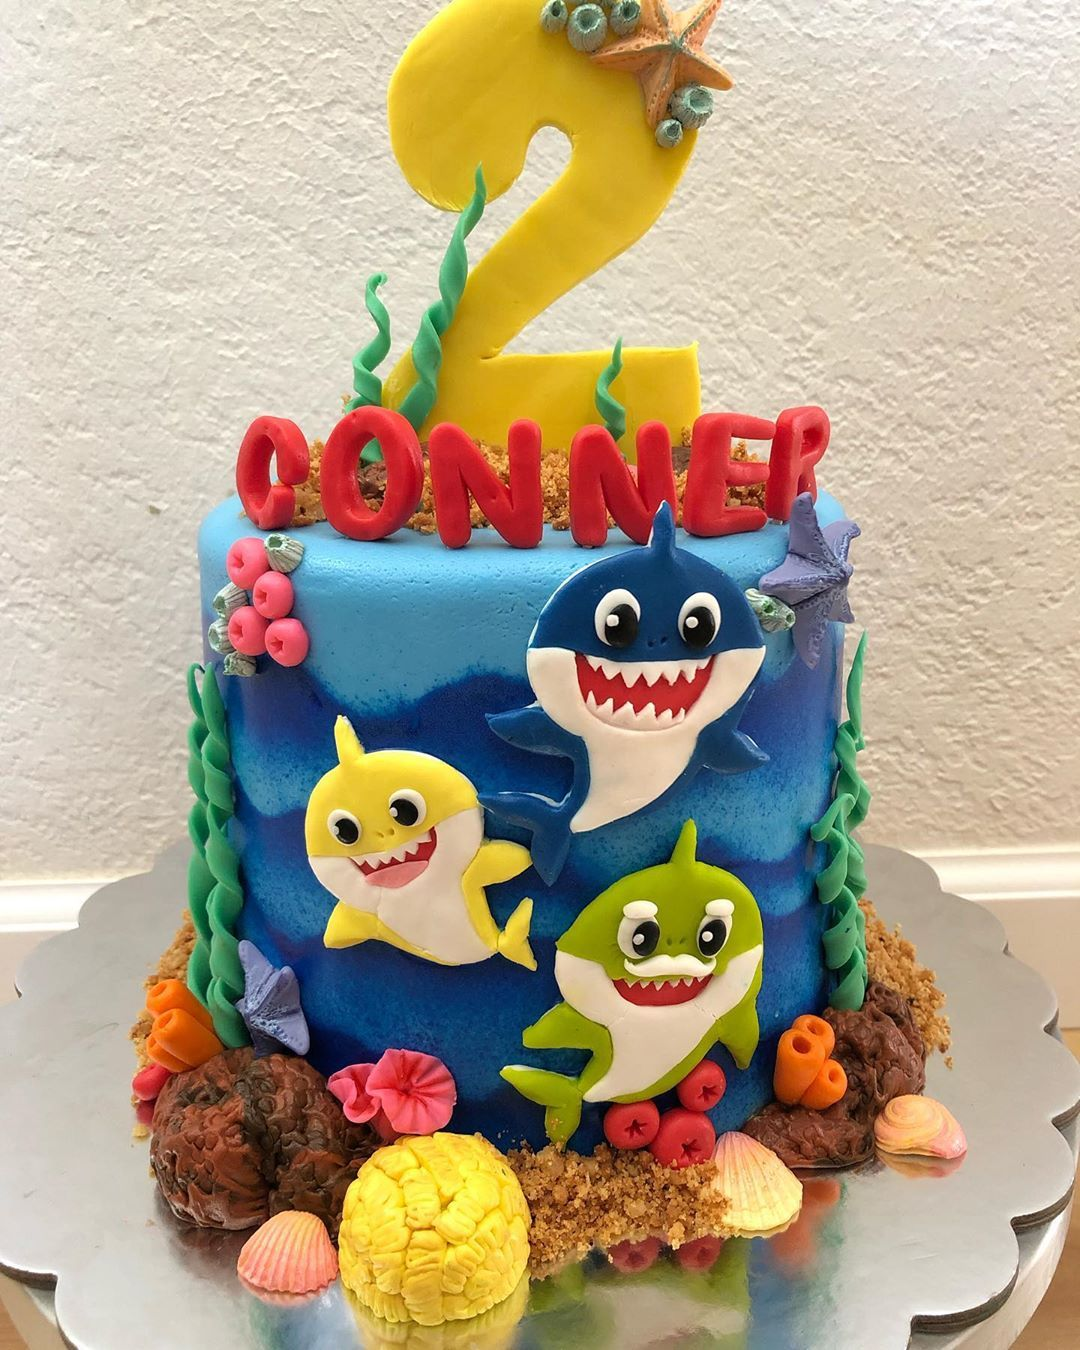 Yoruwai Studio On Instagram Latepost Baby Shark Cake And Cupcakes For Conner S 2nd Bir Shark Birthday Cakes Shark Themed Birthday Party Shark Birthday Party